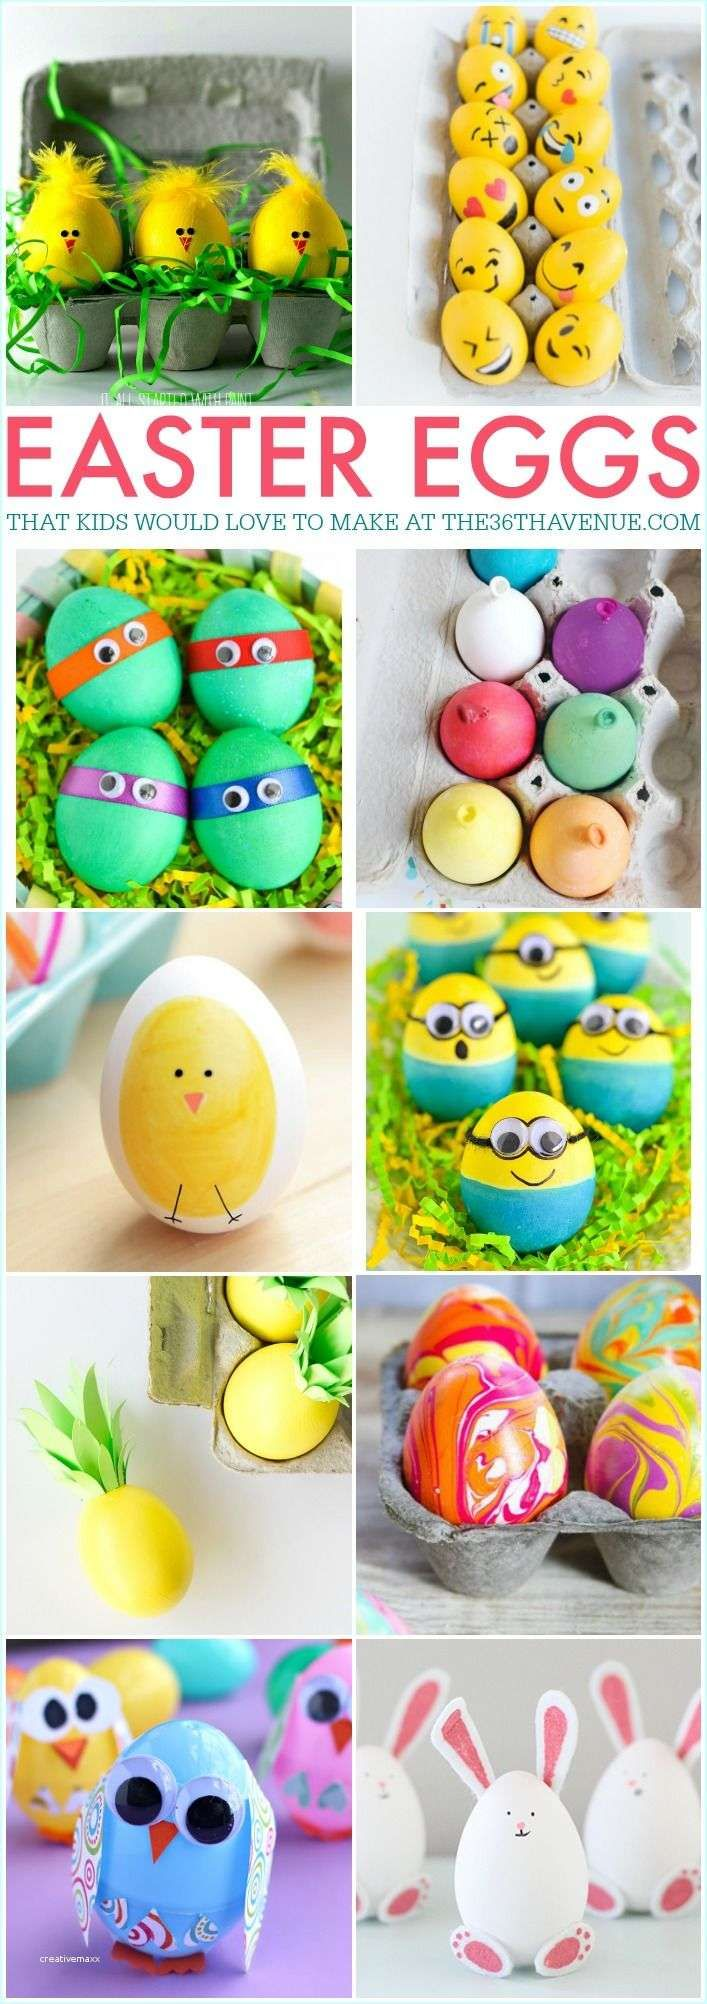 Easter Egg Crafts For Adults